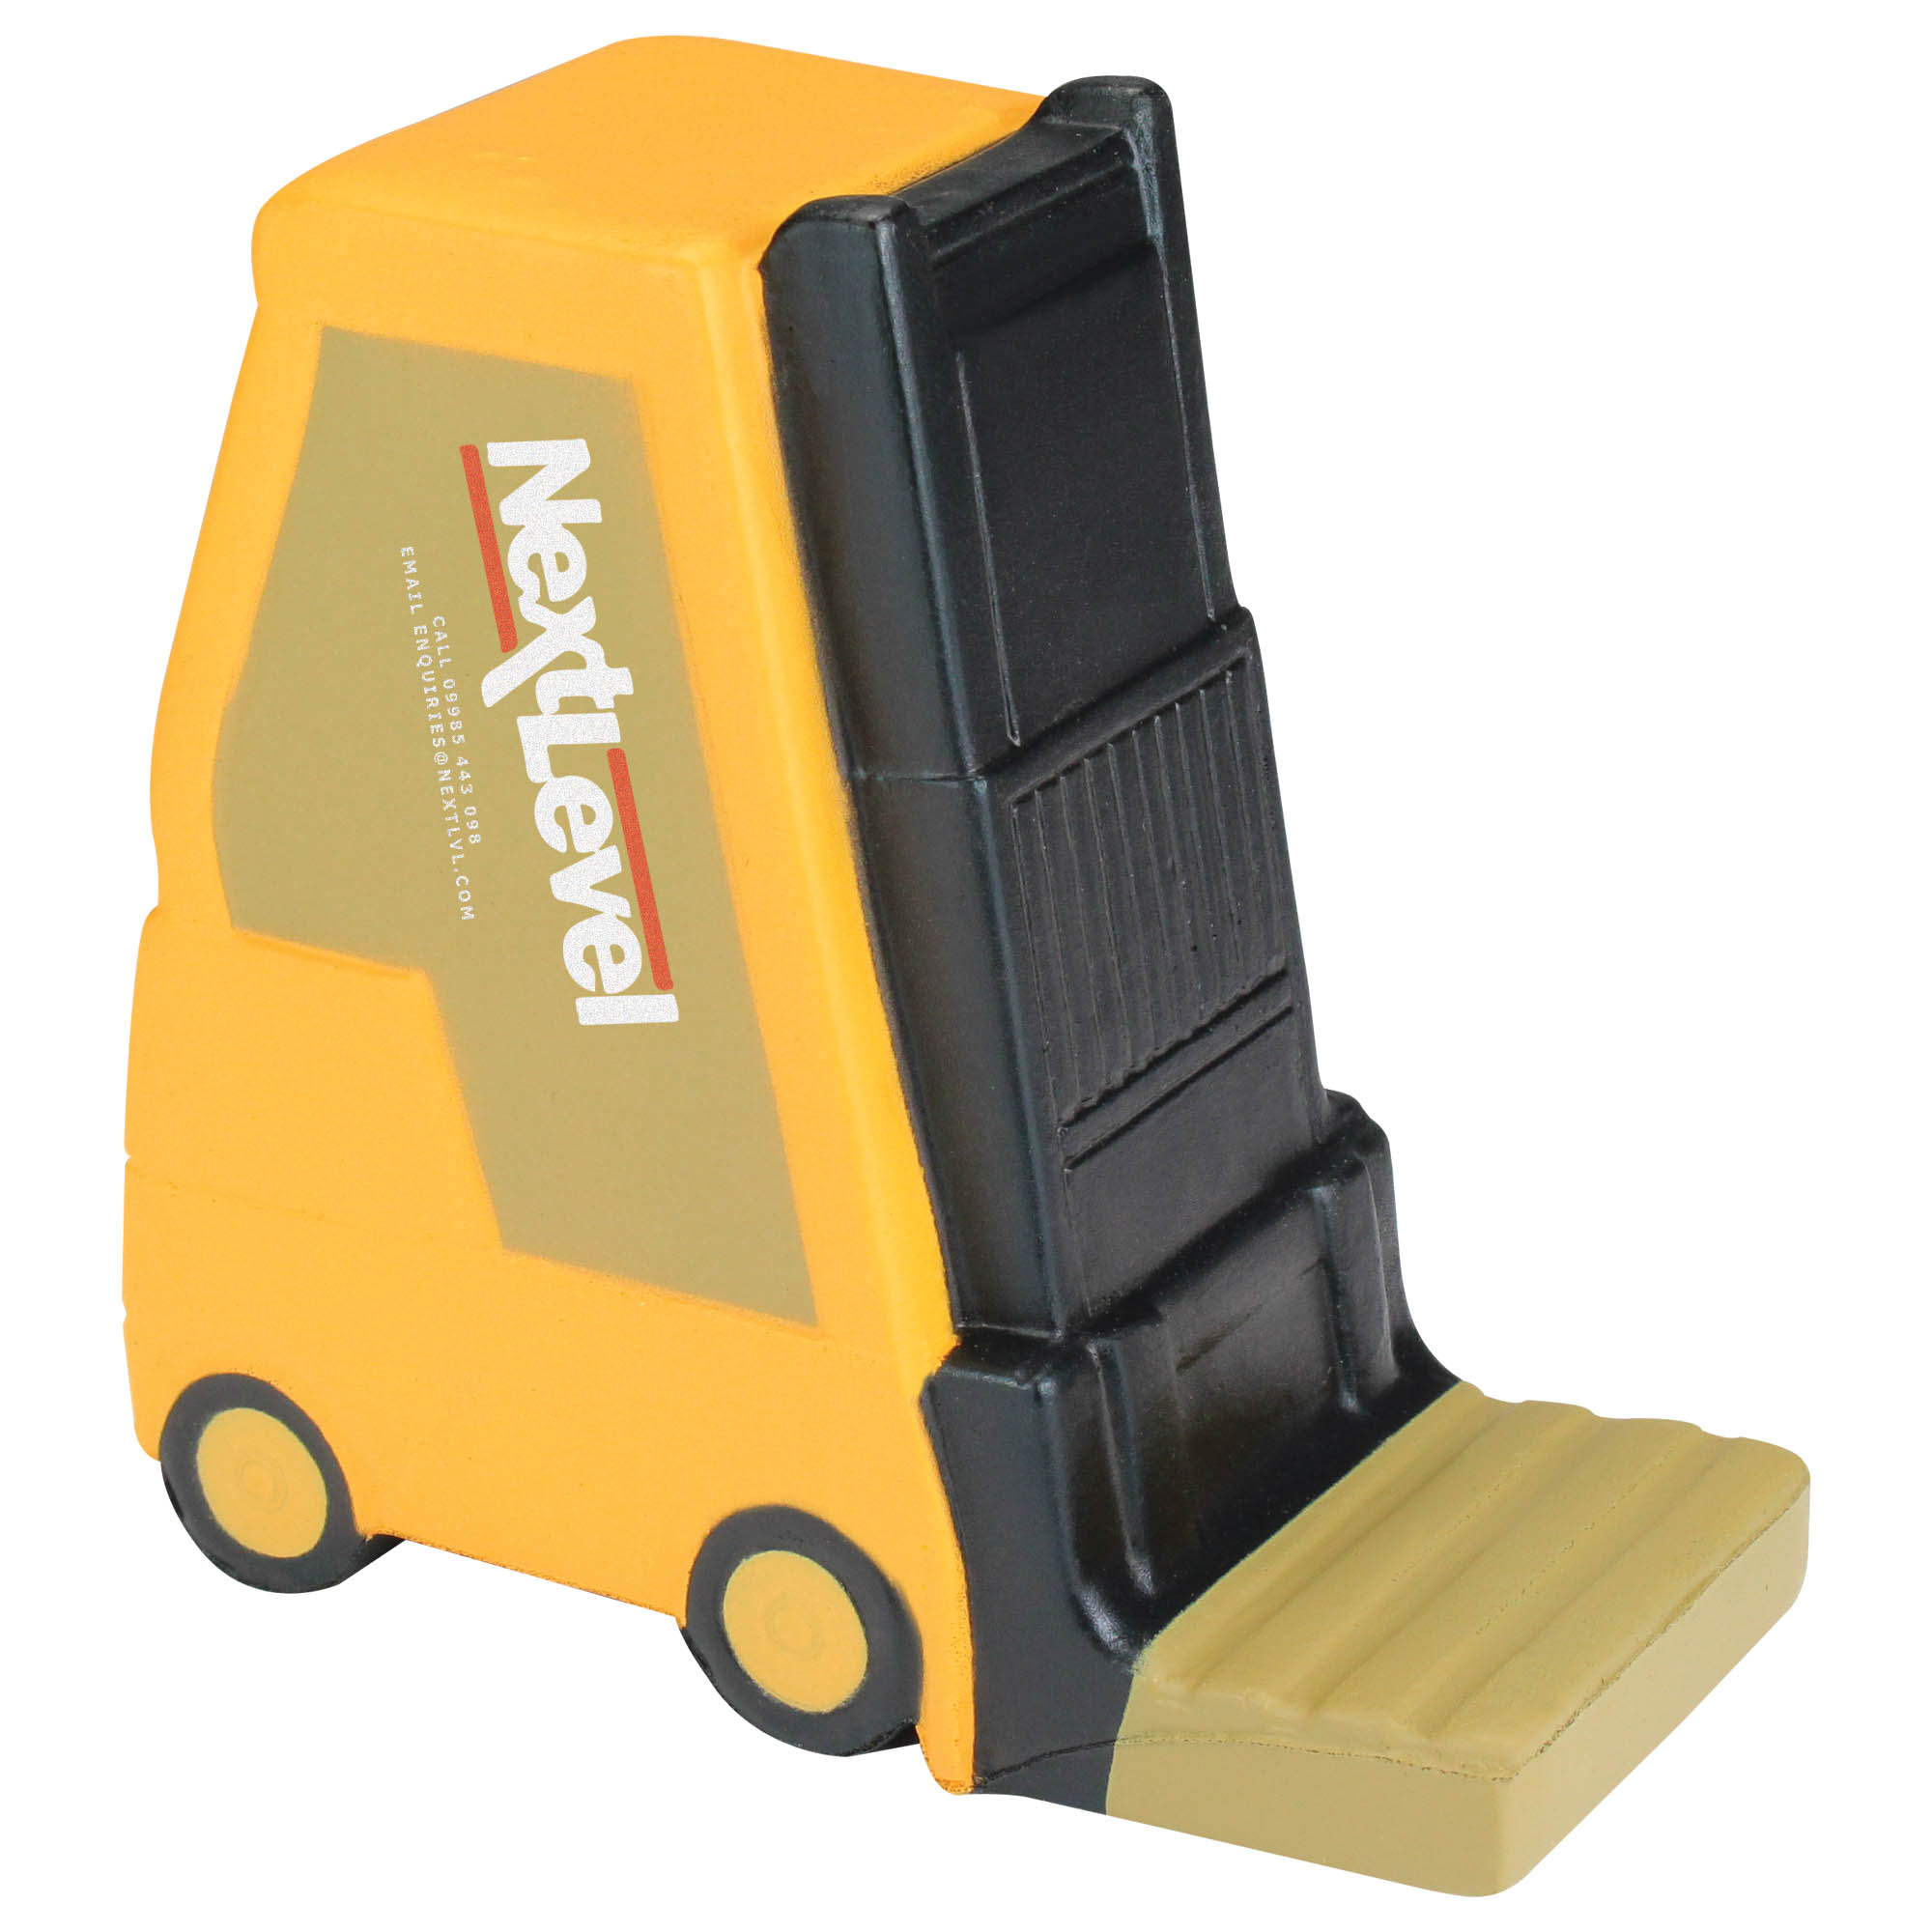 Stress Fork Lift